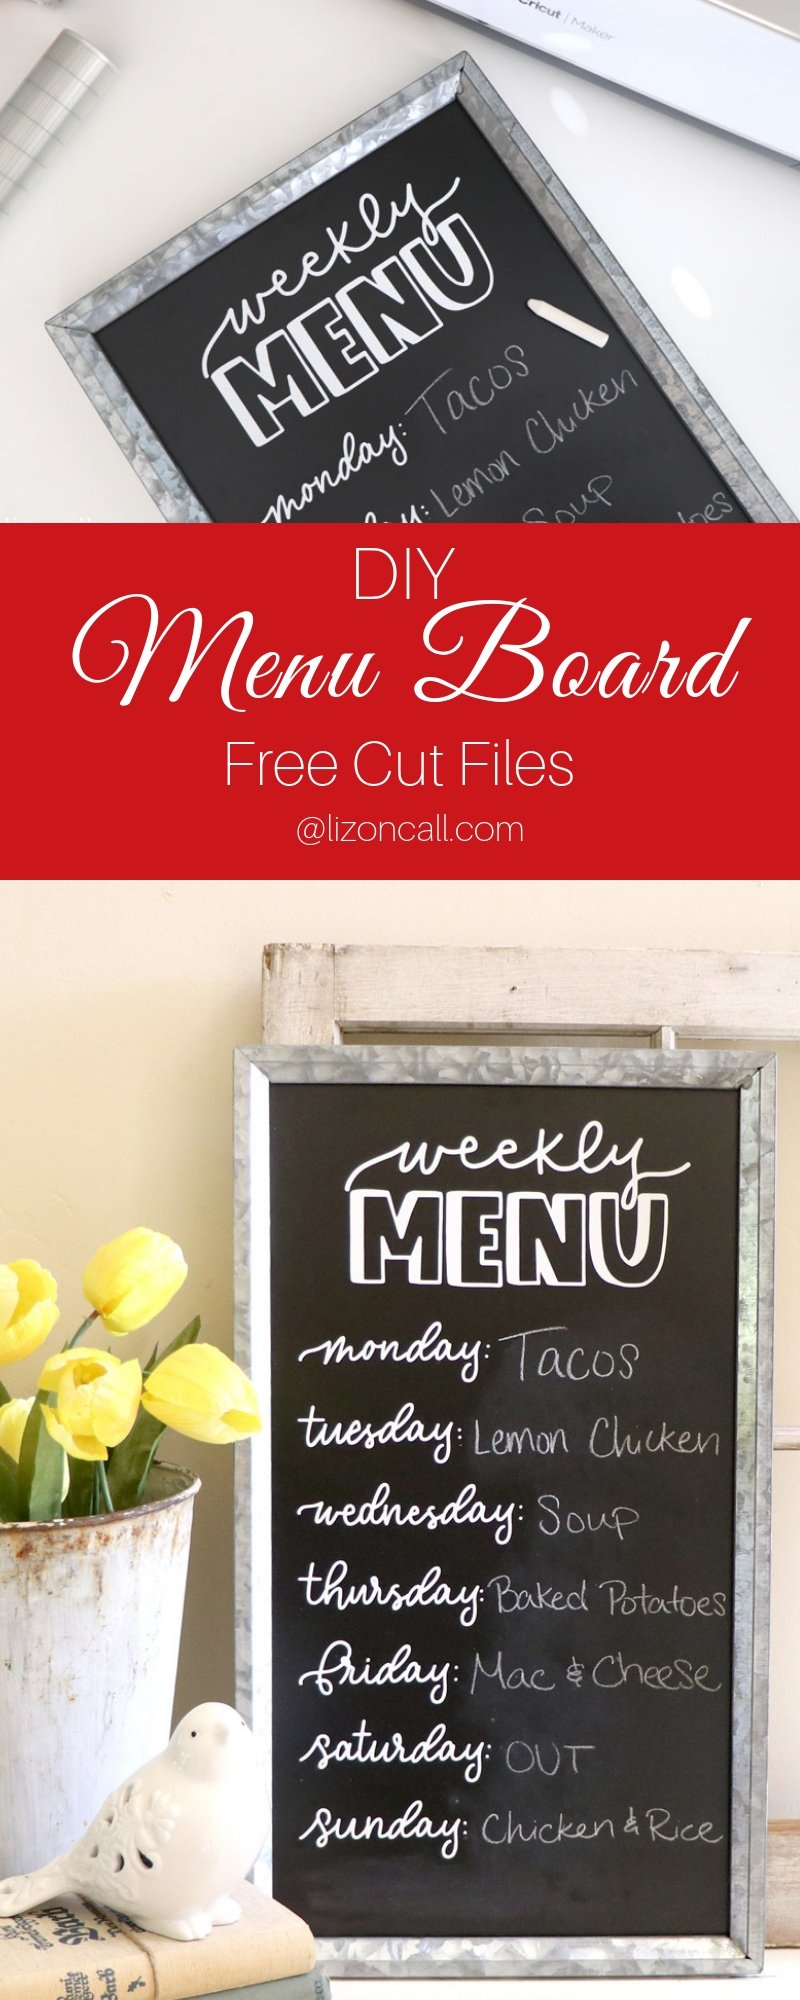 Make dinner time less of a challenge everyday with the help of this DIY Weekly Menu Board.No more wondering what's for dinner at 5:00 in the evening.